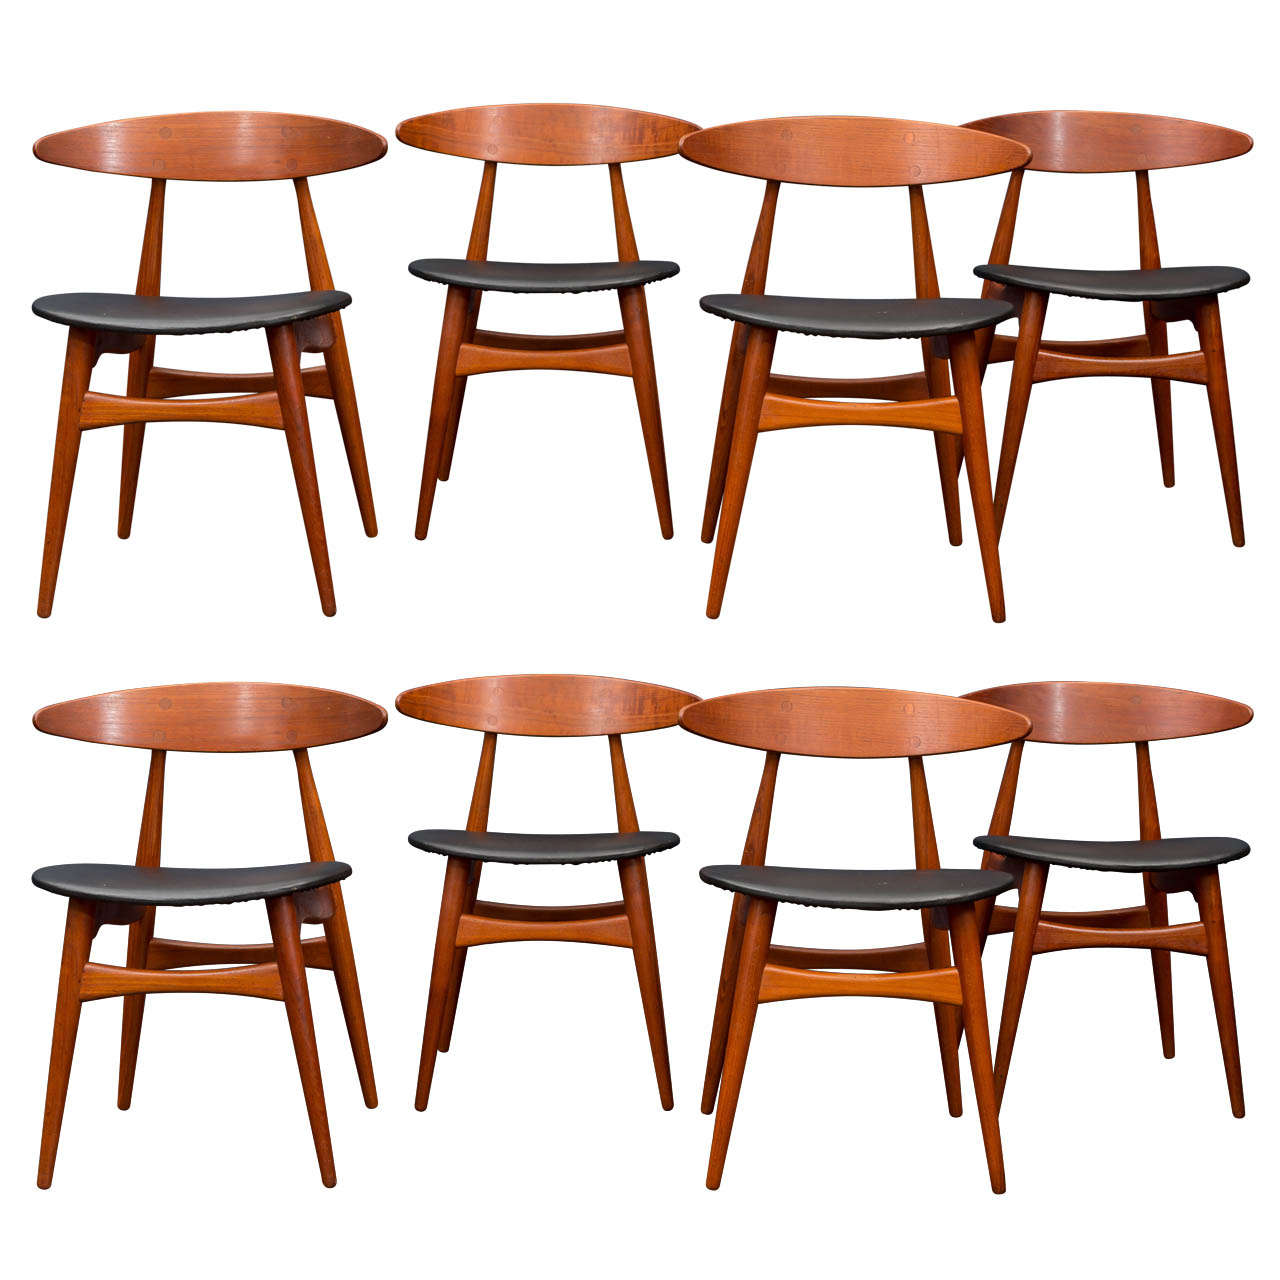 hans wegner ch33 dining chairs at 1stdibs. Black Bedroom Furniture Sets. Home Design Ideas